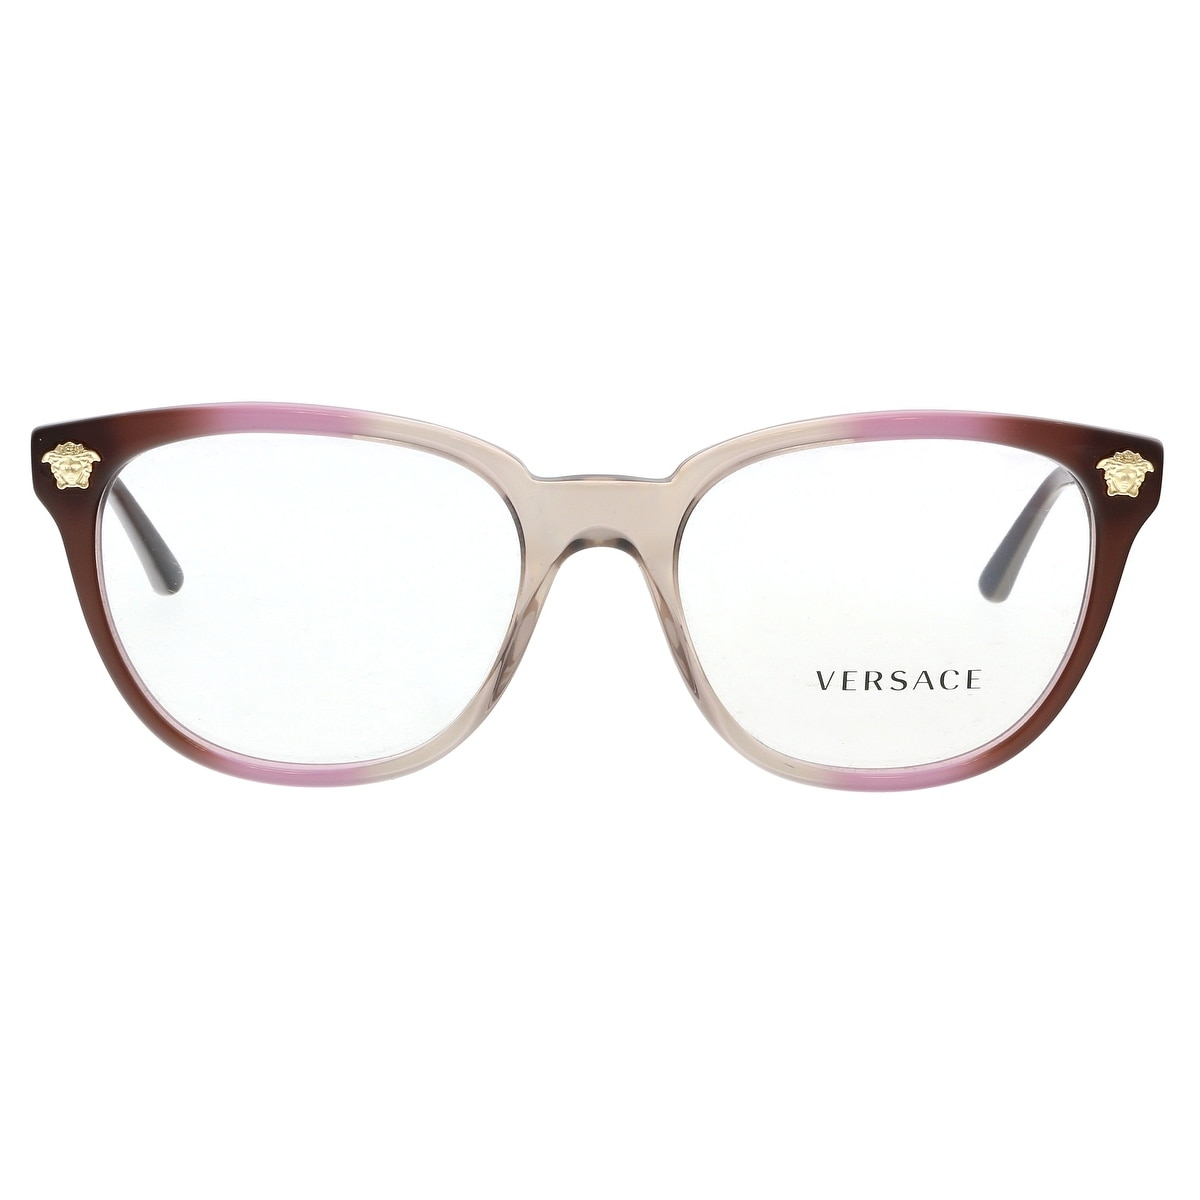 50c1f55533 Shop Versace VE3242 5229 Violet Brown Rectangular Opticals - no size - Free  Shipping Today - Overstock - 24080288